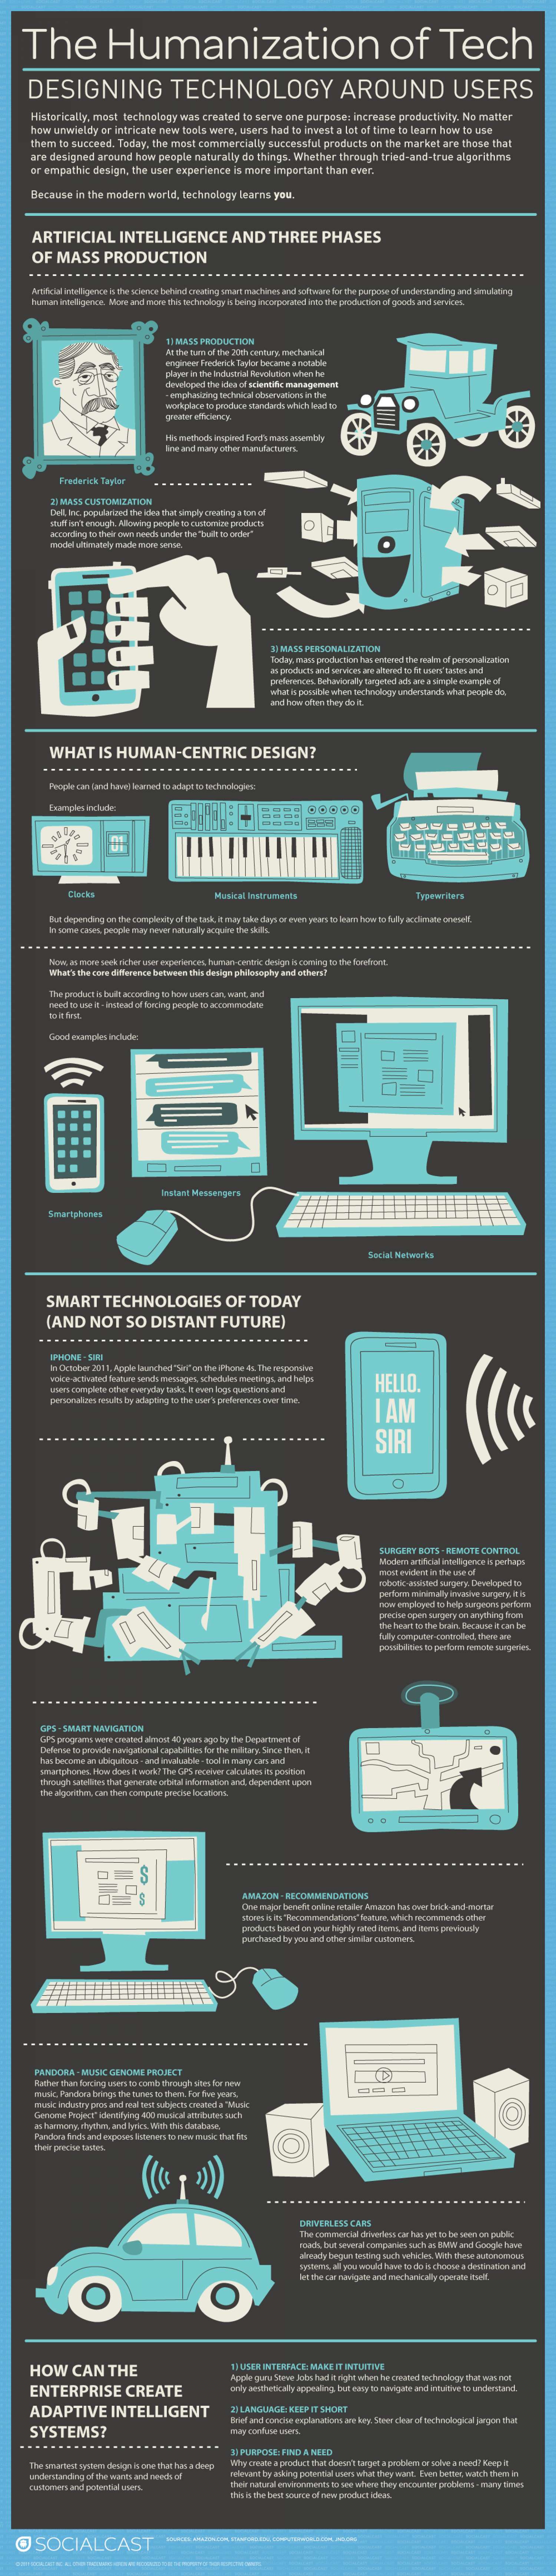 The Humanization of Tech: Designing Technology Around Users  Infographic